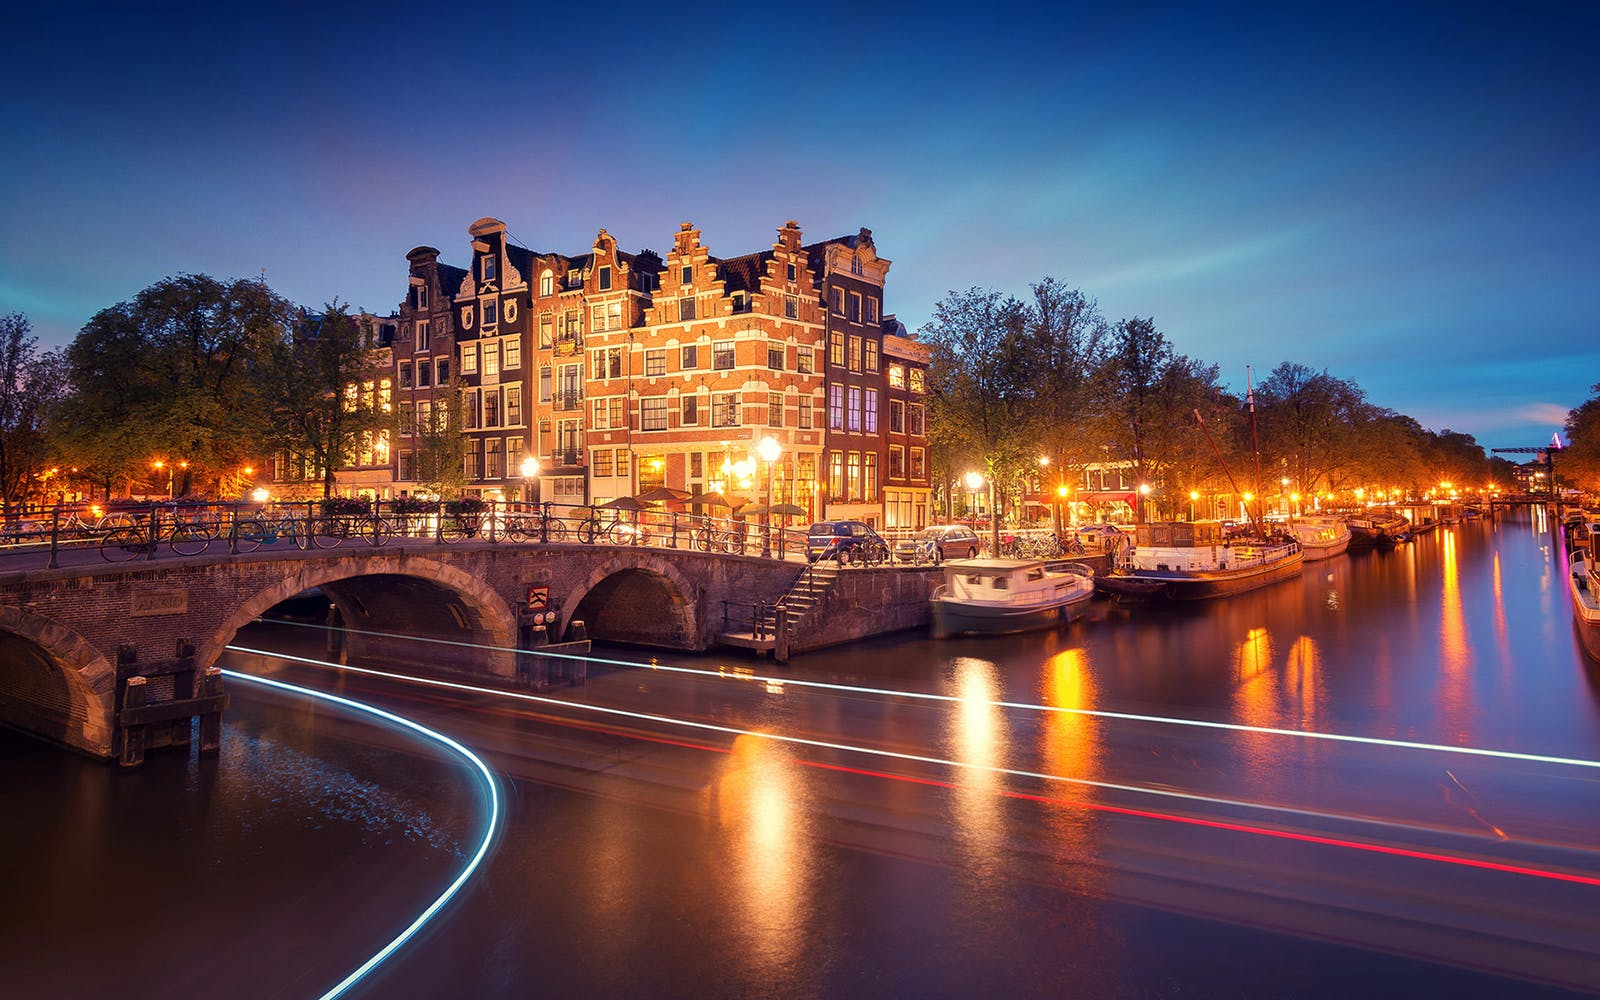 Amsterdam Canal Cruise Evening Cruise